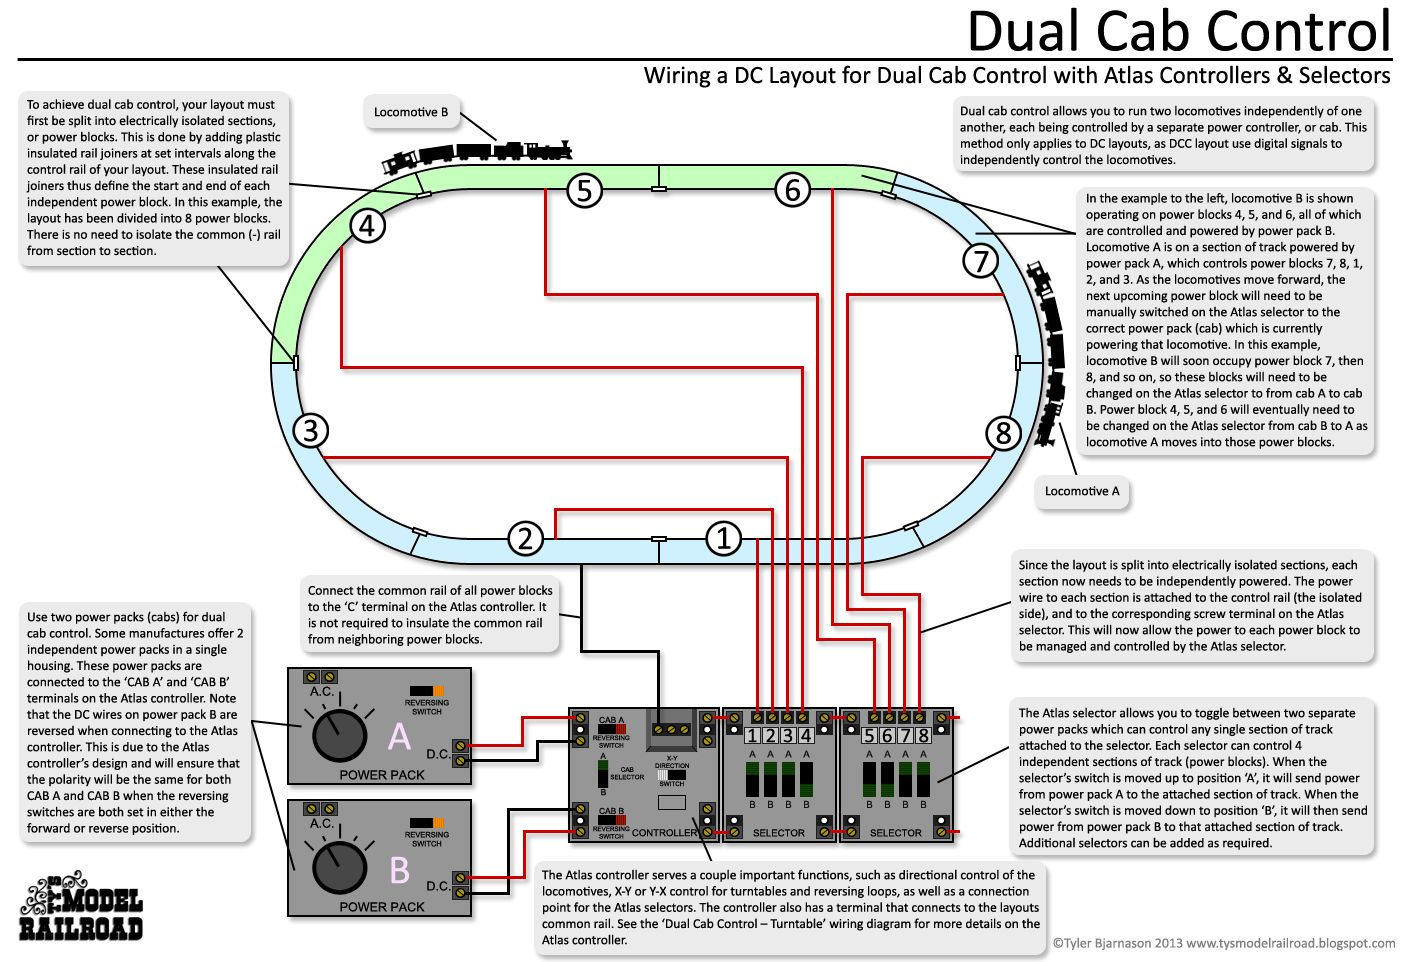 medium resolution of atlas model railroad wiring how to wire a layout for dual cab control using an atlas controller